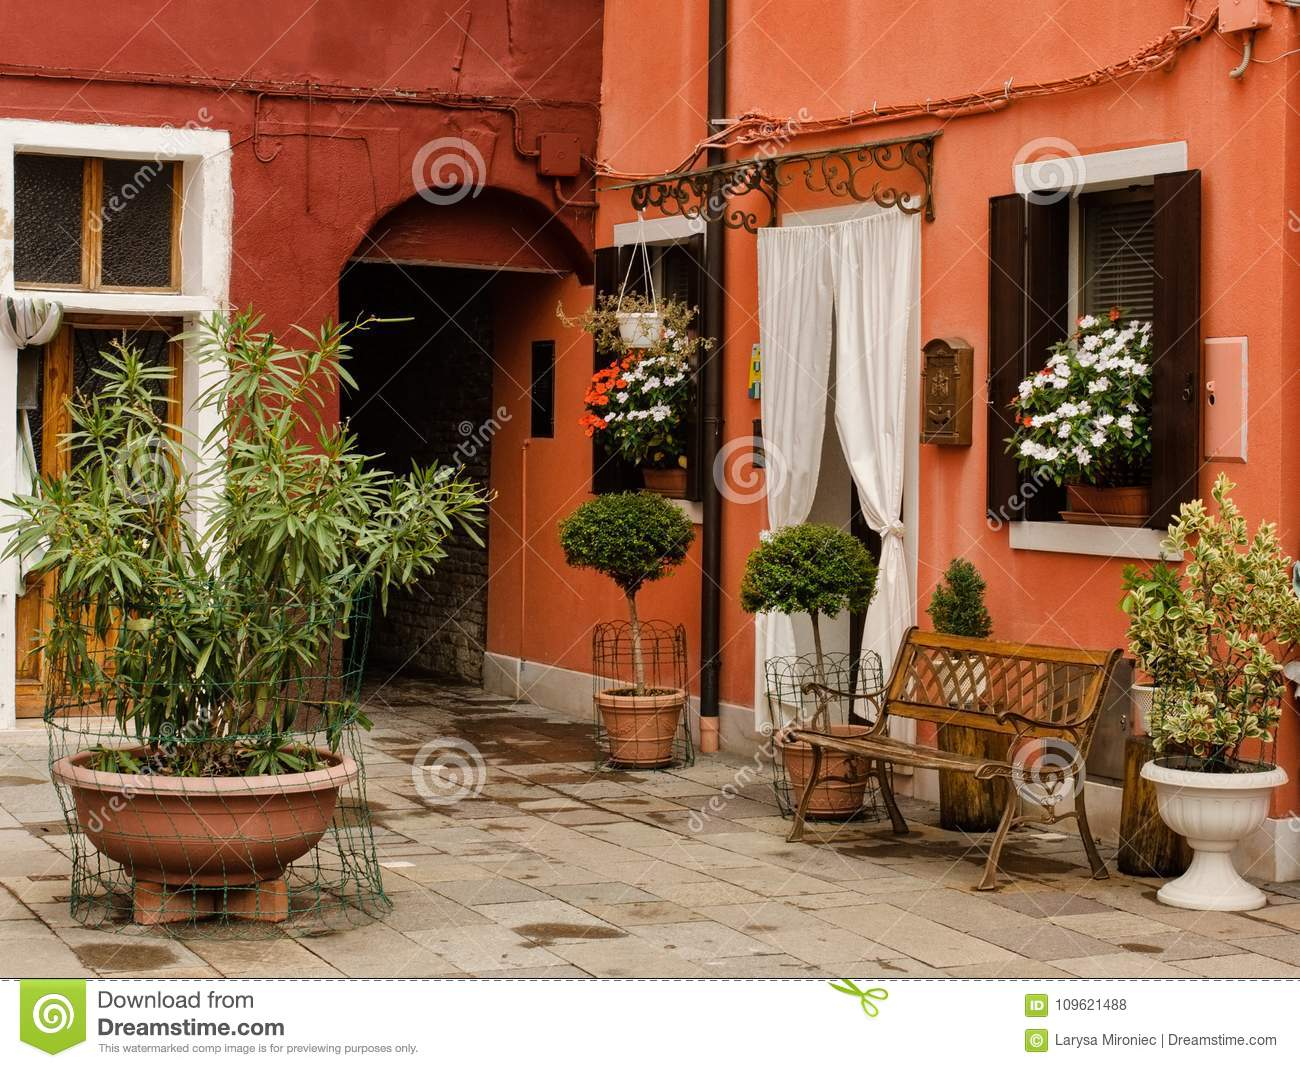 small patio of the brightly painted houses in burano, italy stocksmall patio of the brightly painted houses decorated with flowers in burano in northern italy